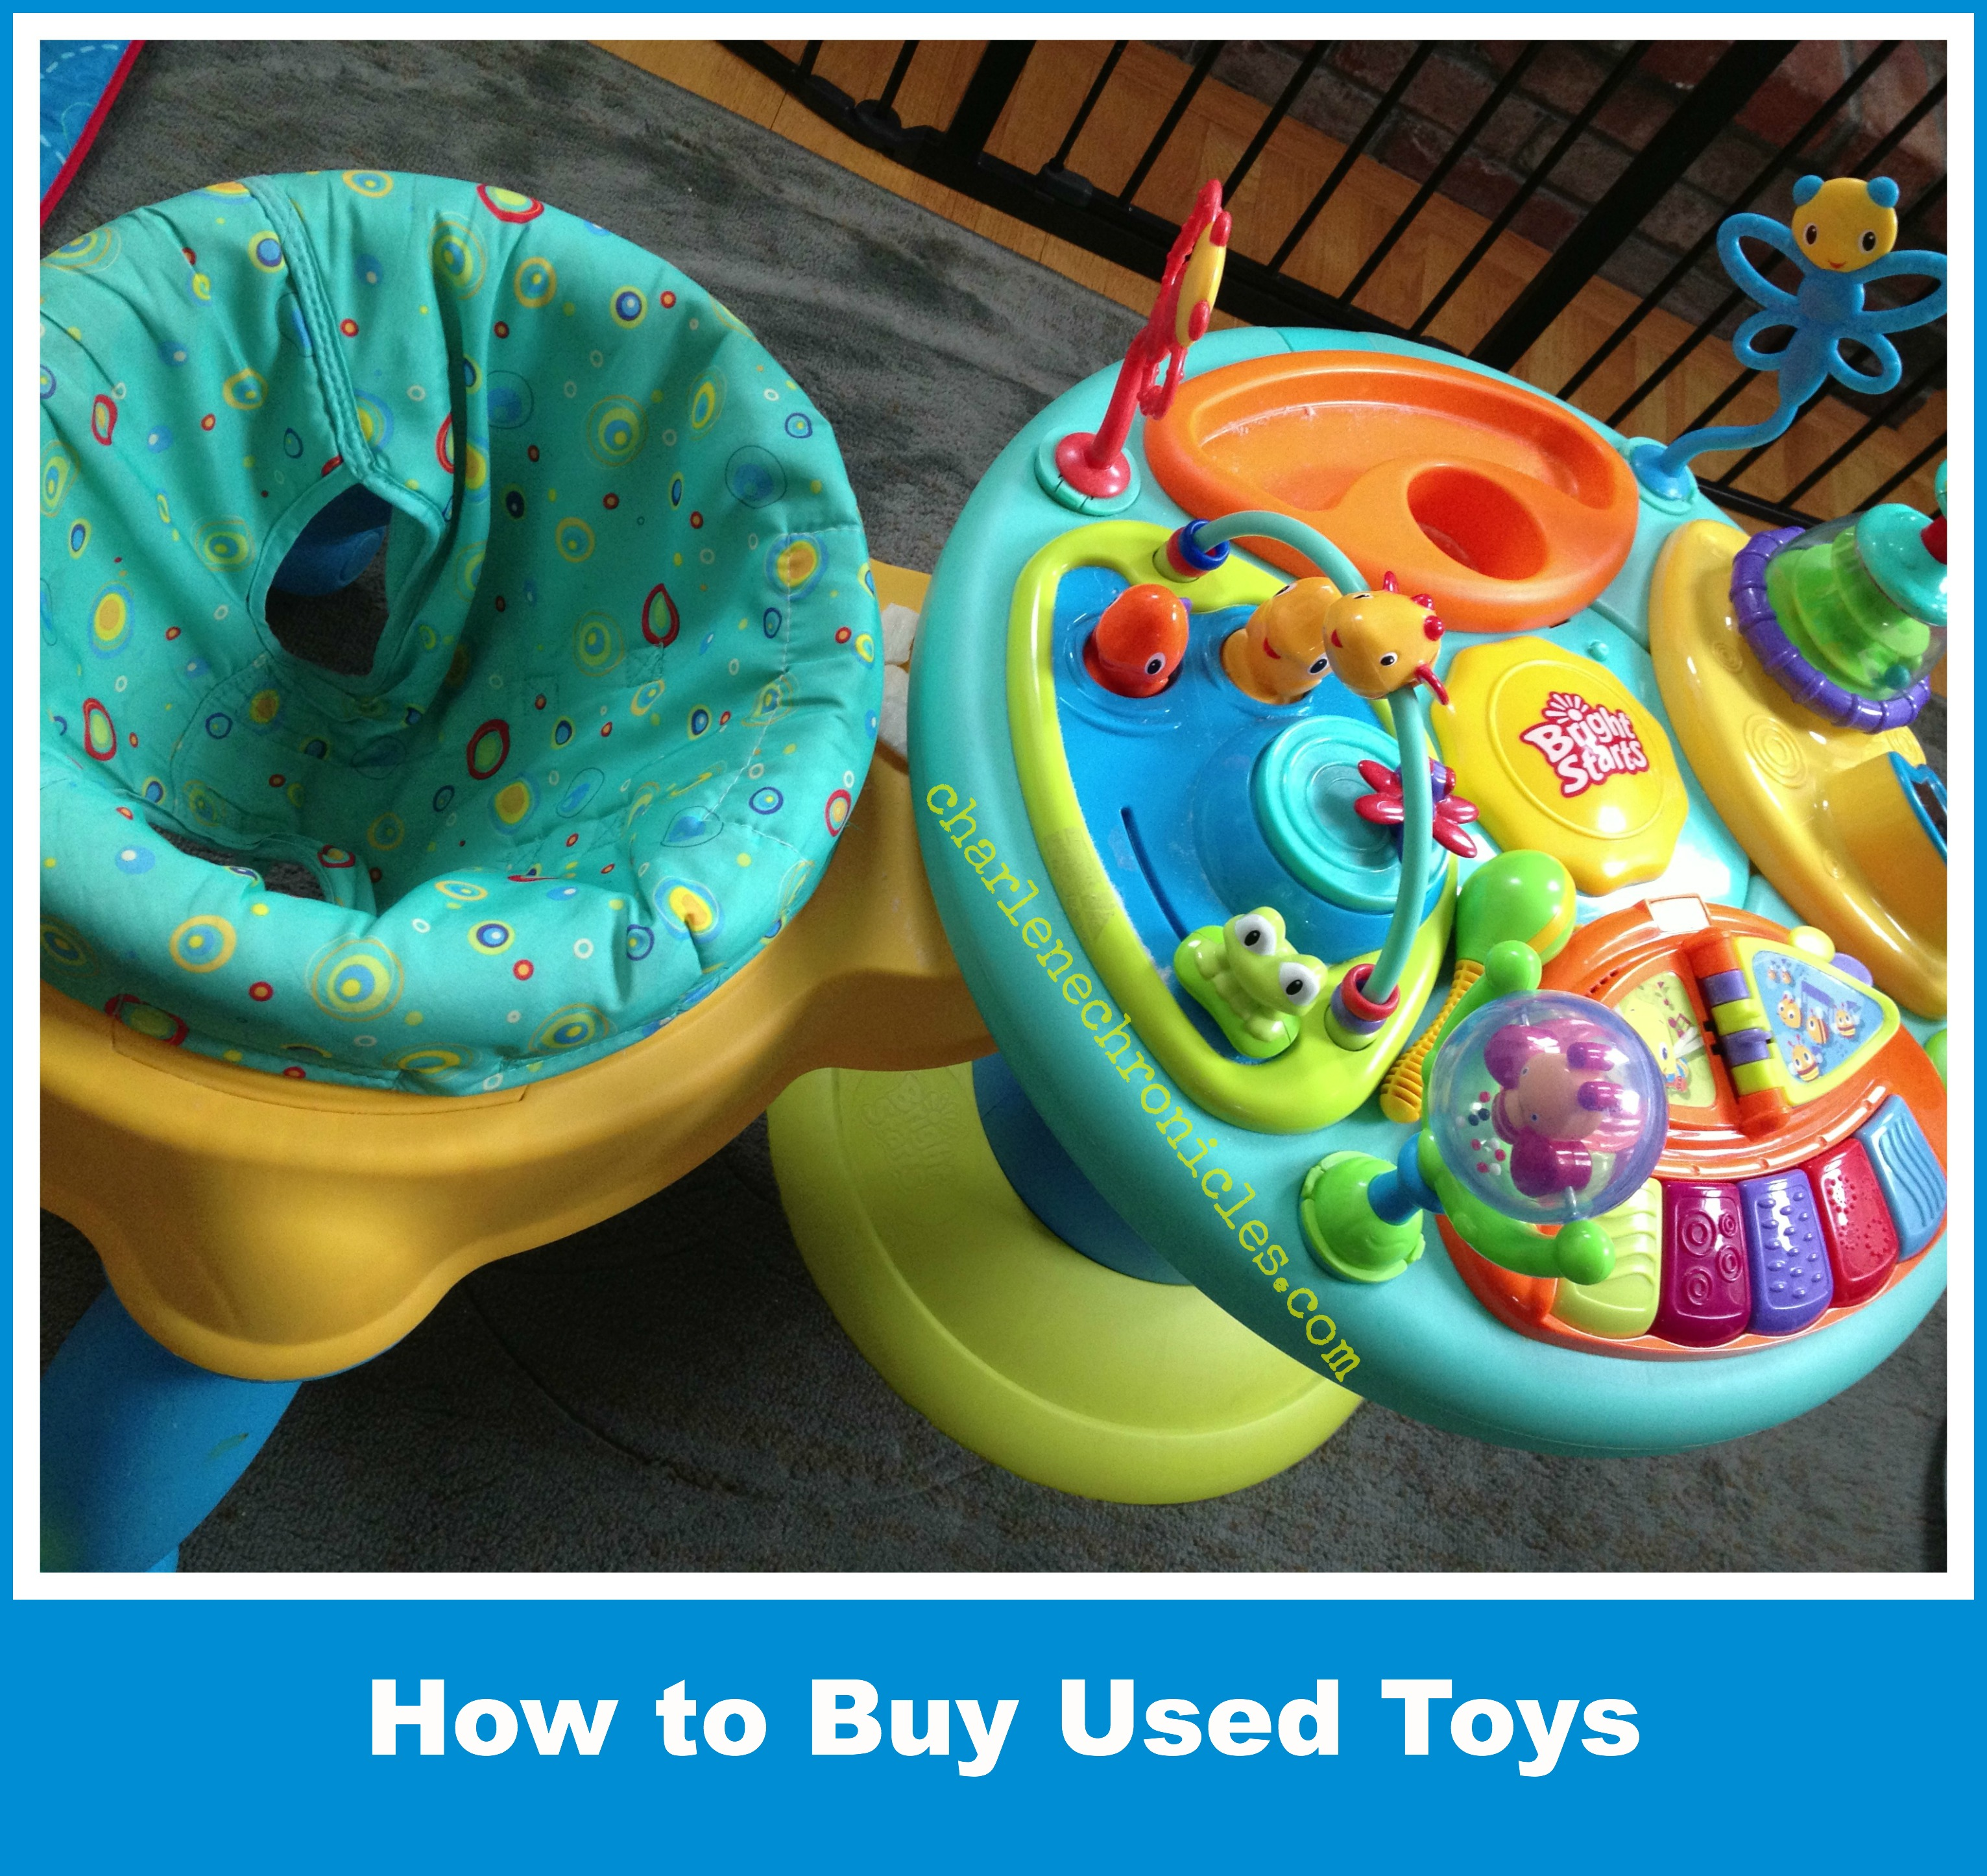 Guide To Choosing Baby Toys : Tips for buying used toys kids charlene chronicles